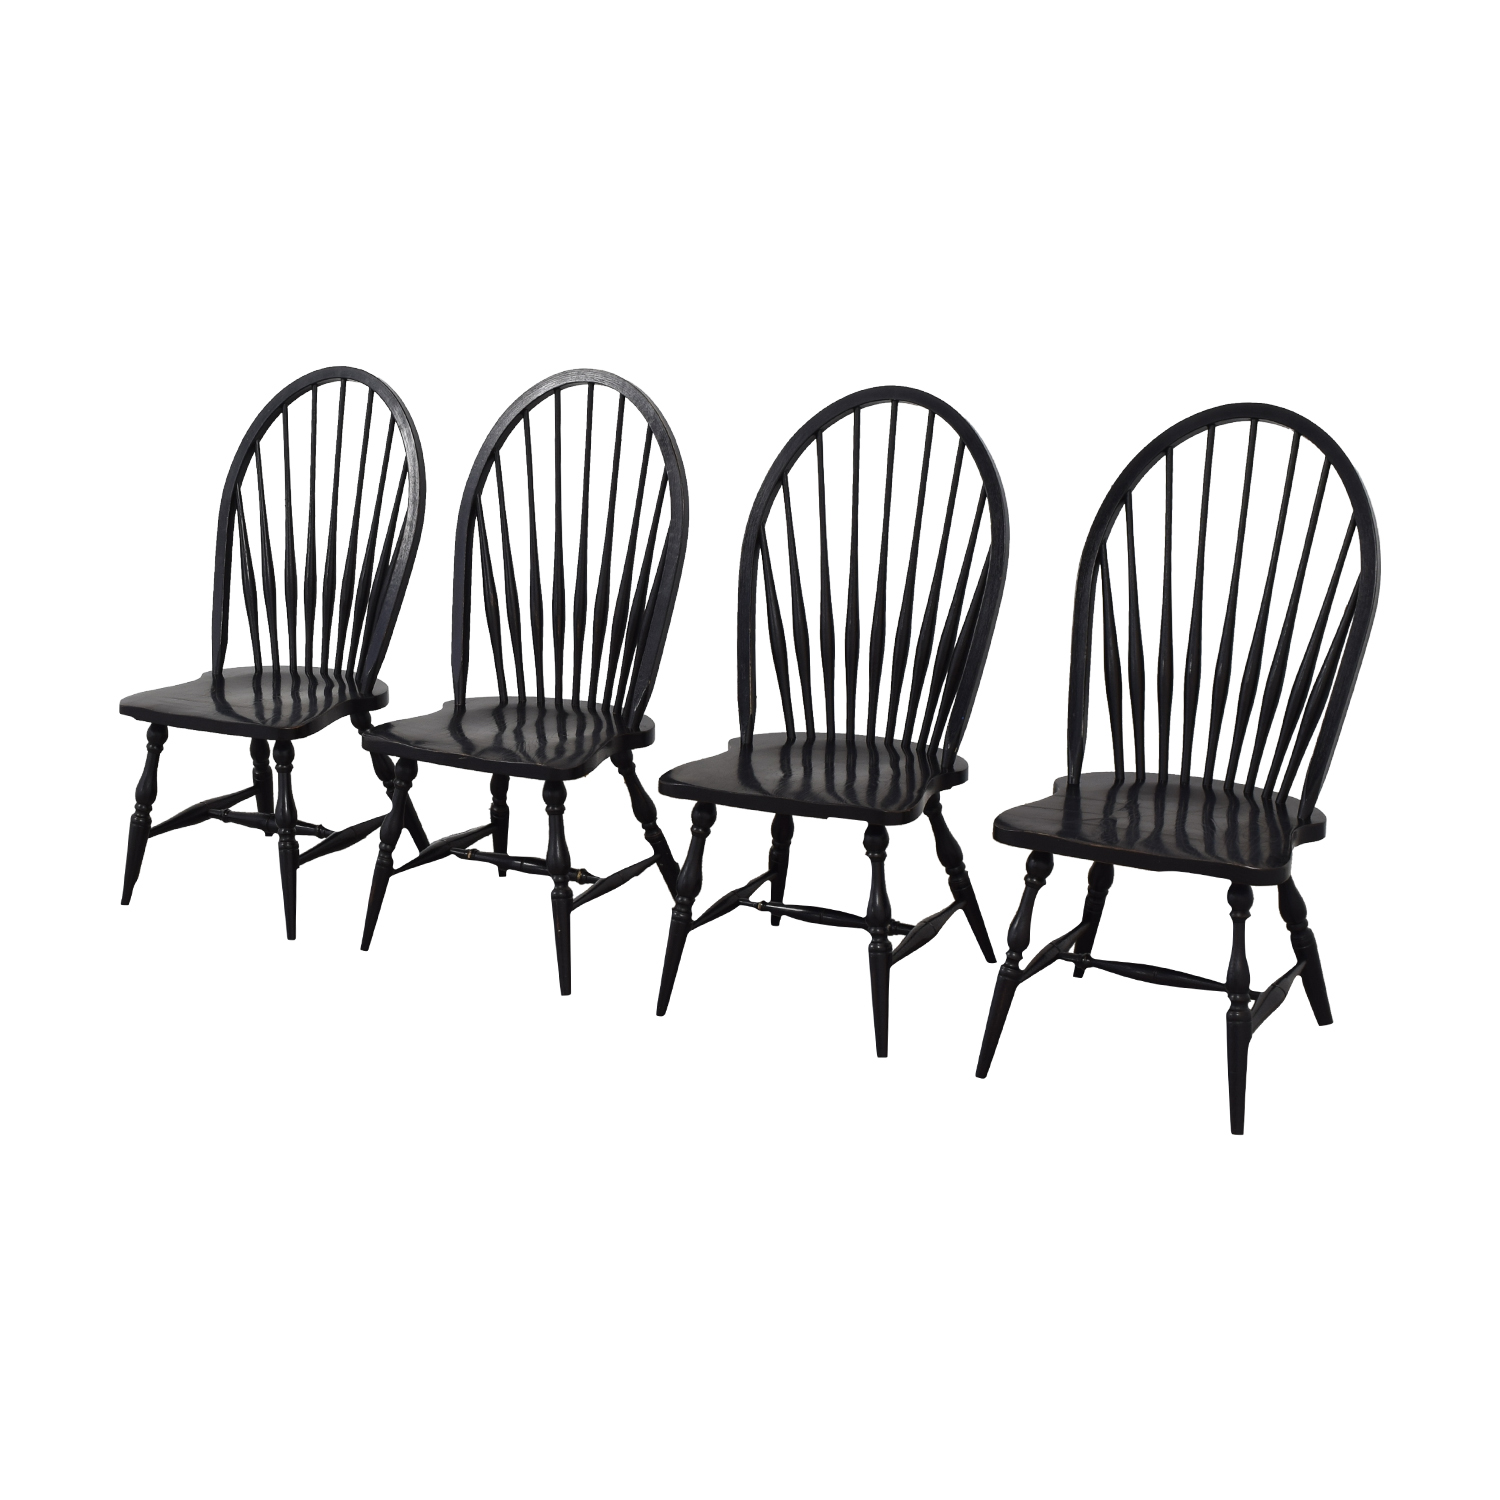 Country Willow Country Willow Windsor Dining Chairs